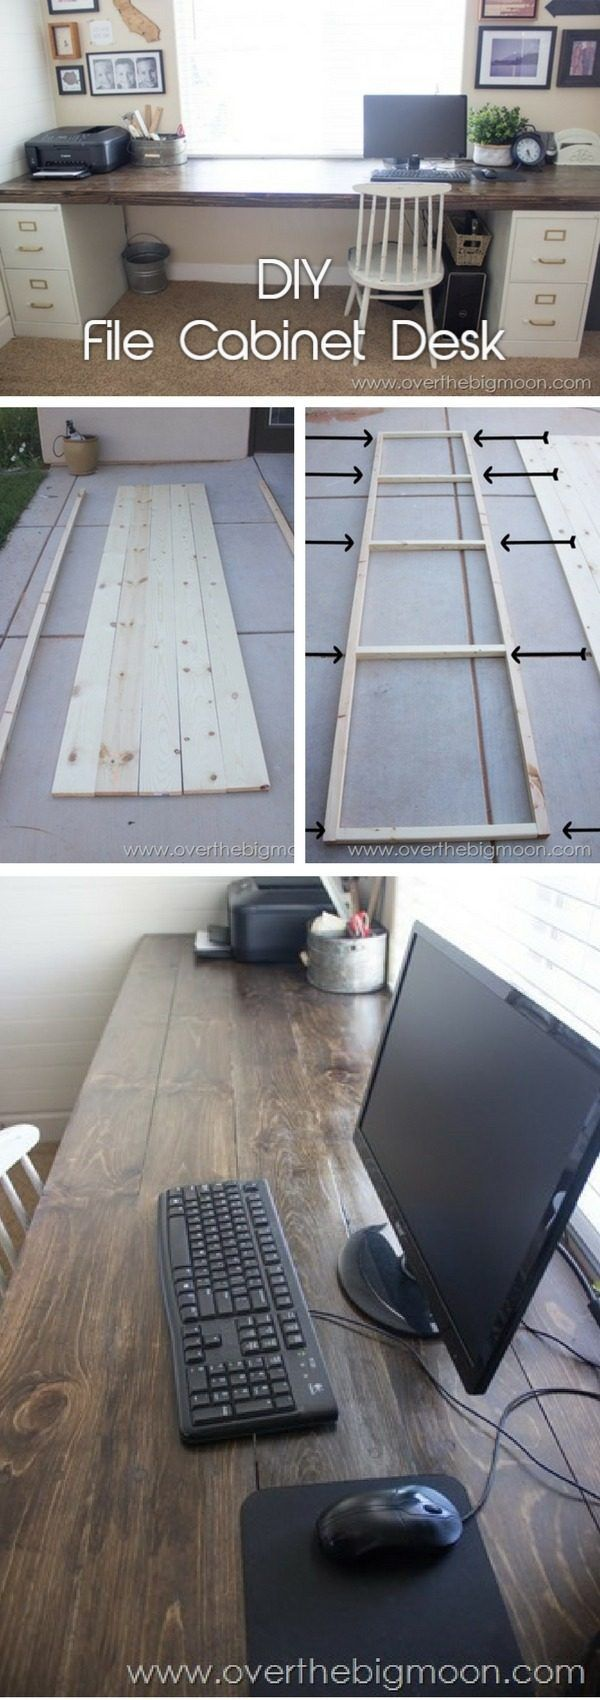 40 Simple DIY Desk Ideas and Designs with a Budget Plan